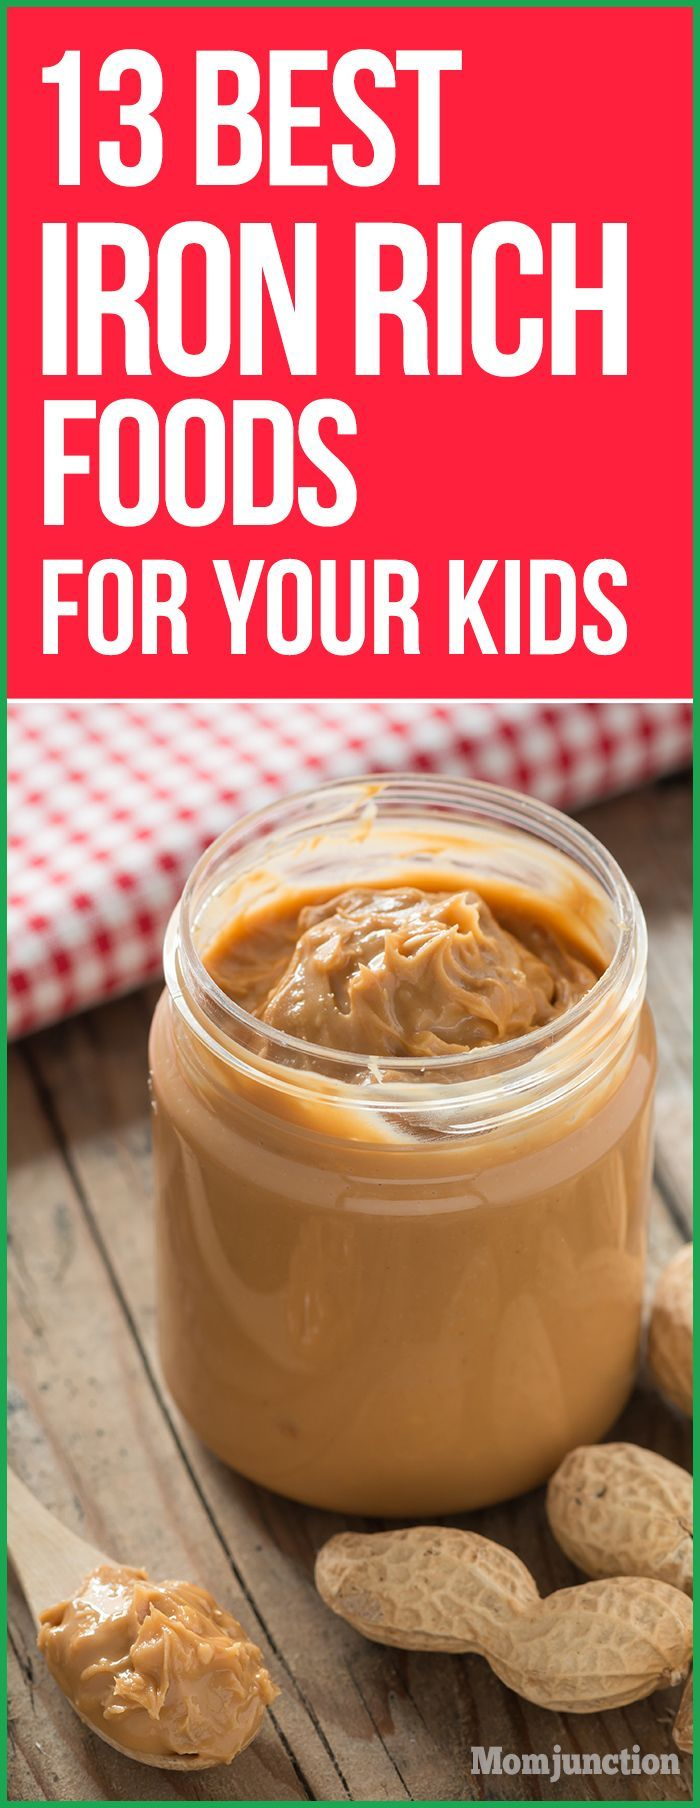 13 Best Iron Rich Foods For Your Kids